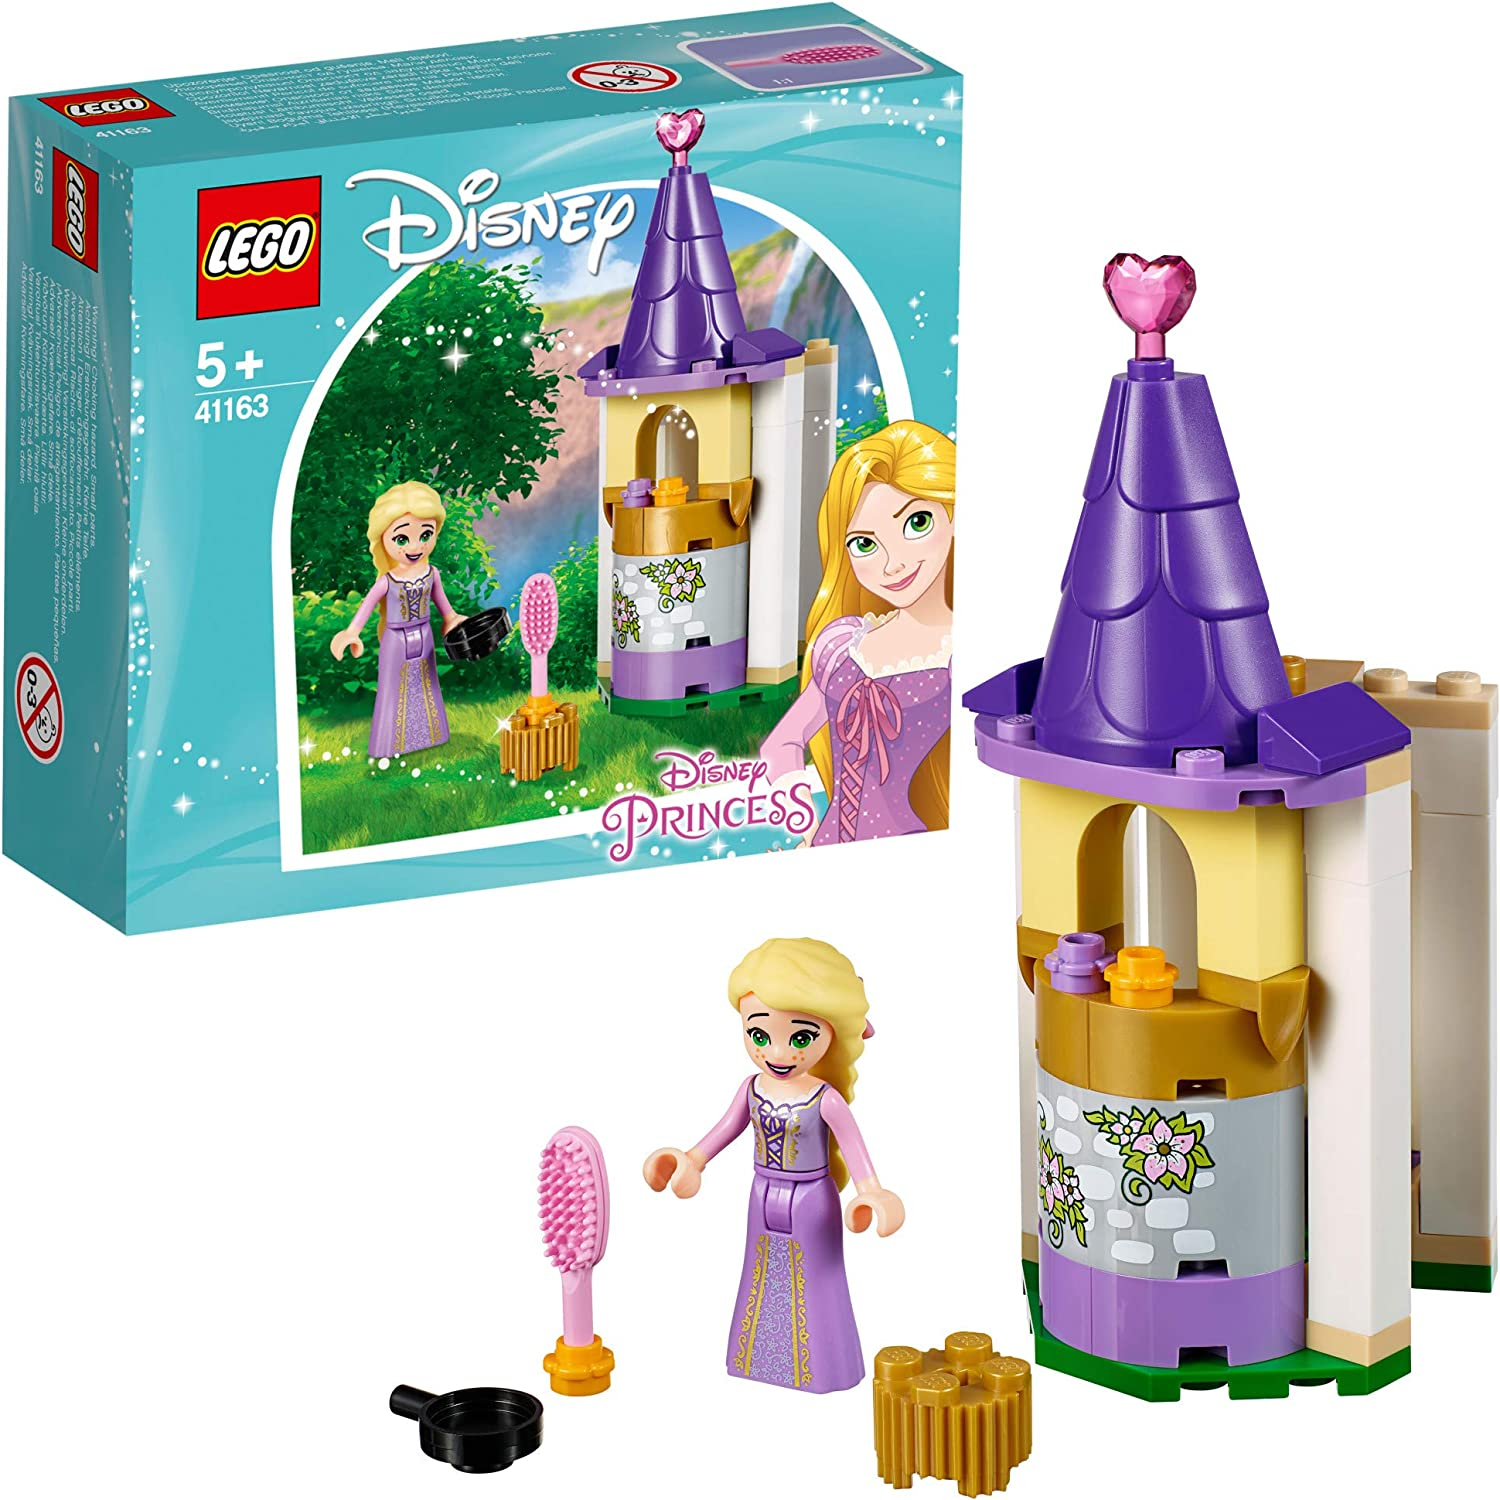 LEGO Disney Rapunzel's Petite Tower 41163 Building Kit (44 Pieces)